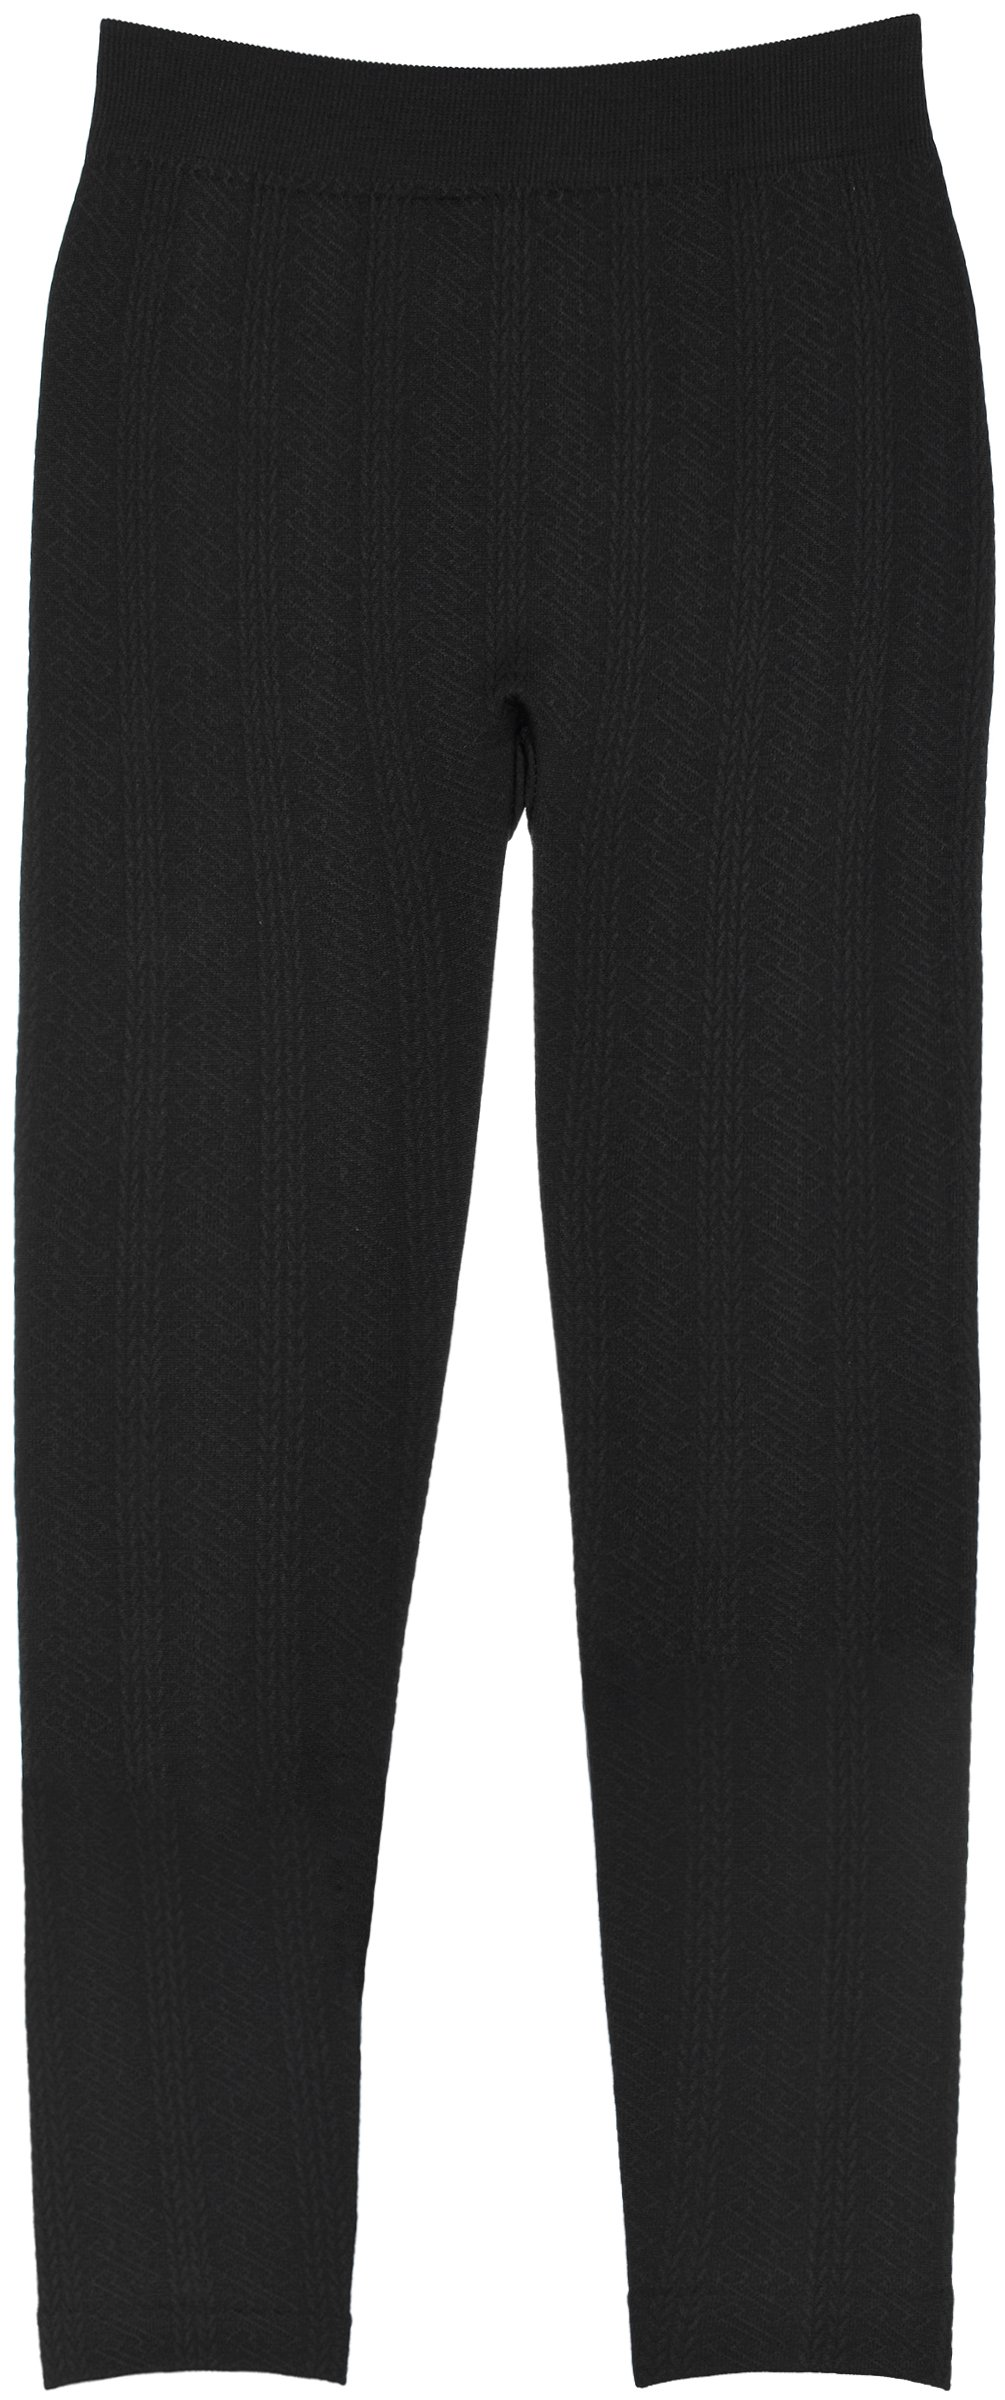 Crush Teen Girls Micro Fleece Lined Leggings in 2 Cable Stitch Patterns in Sizes 7-16 (7-14, 27859 Black)